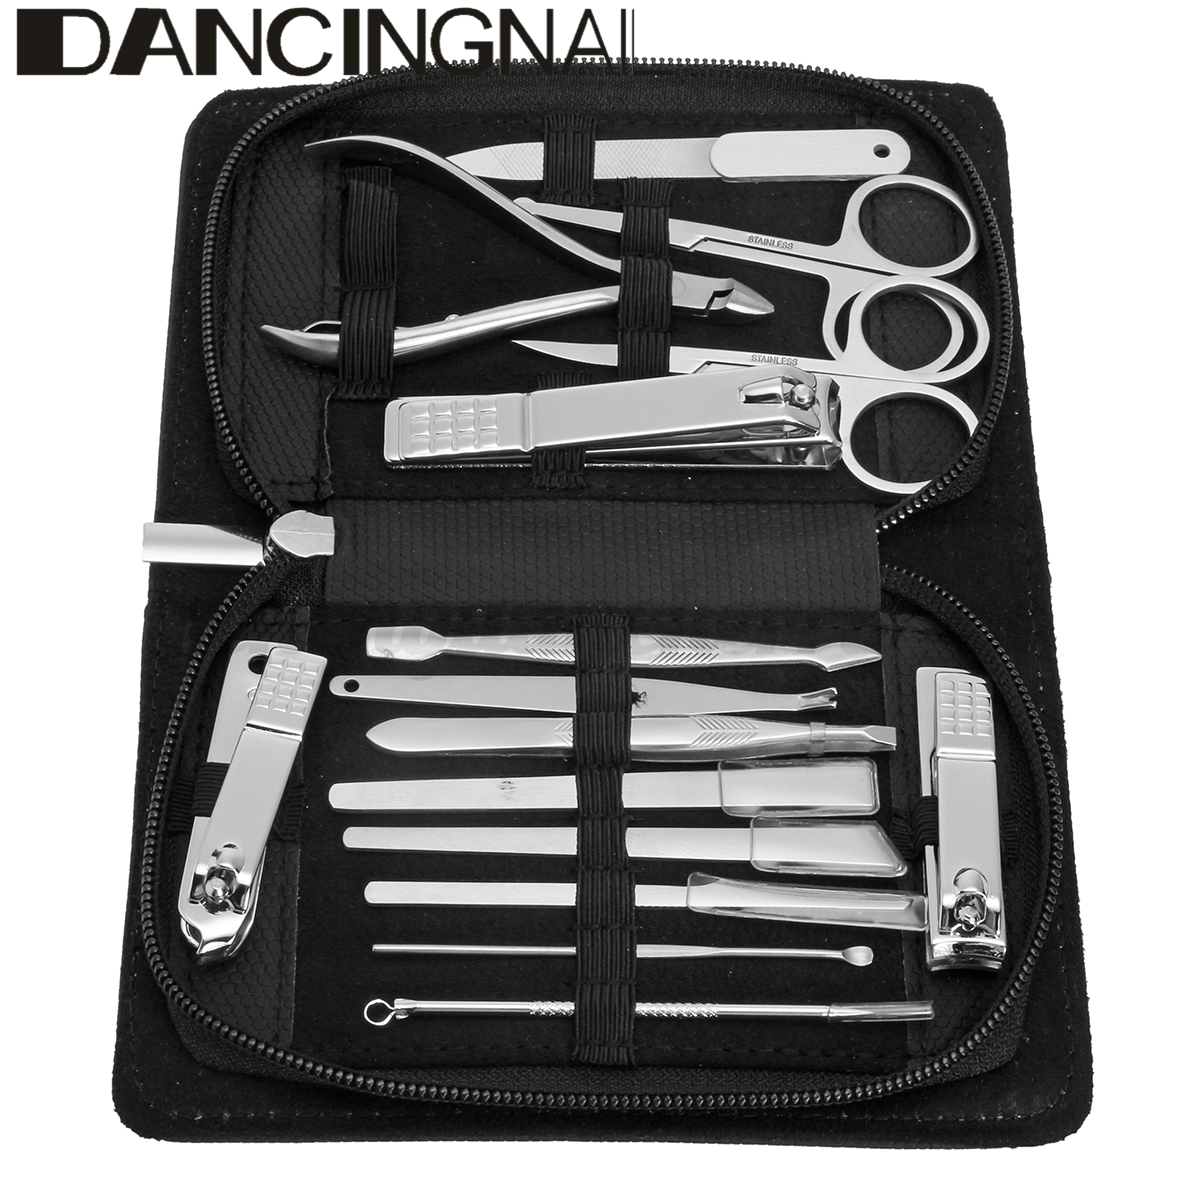 15Pcs Manicure Pedicure Set Stainless Nail Clippers Kit Cuticle ...